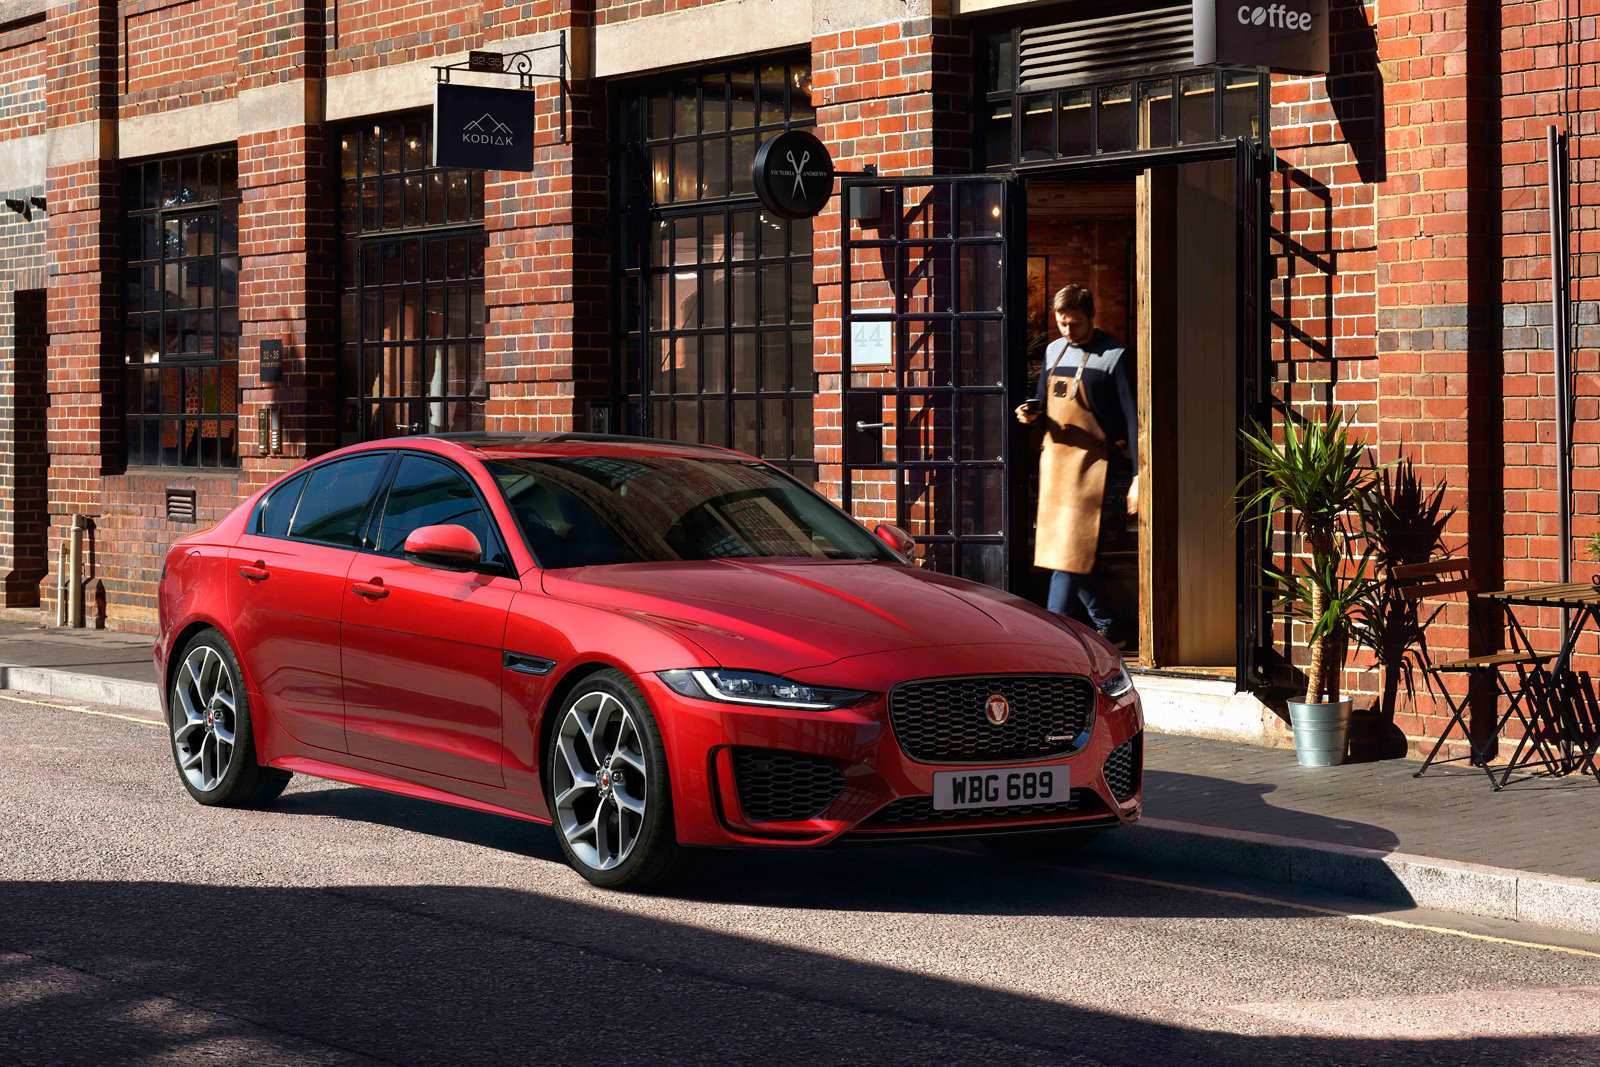 95 New Jaguar Xe May 2020 Configurations by Jaguar Xe May 2020